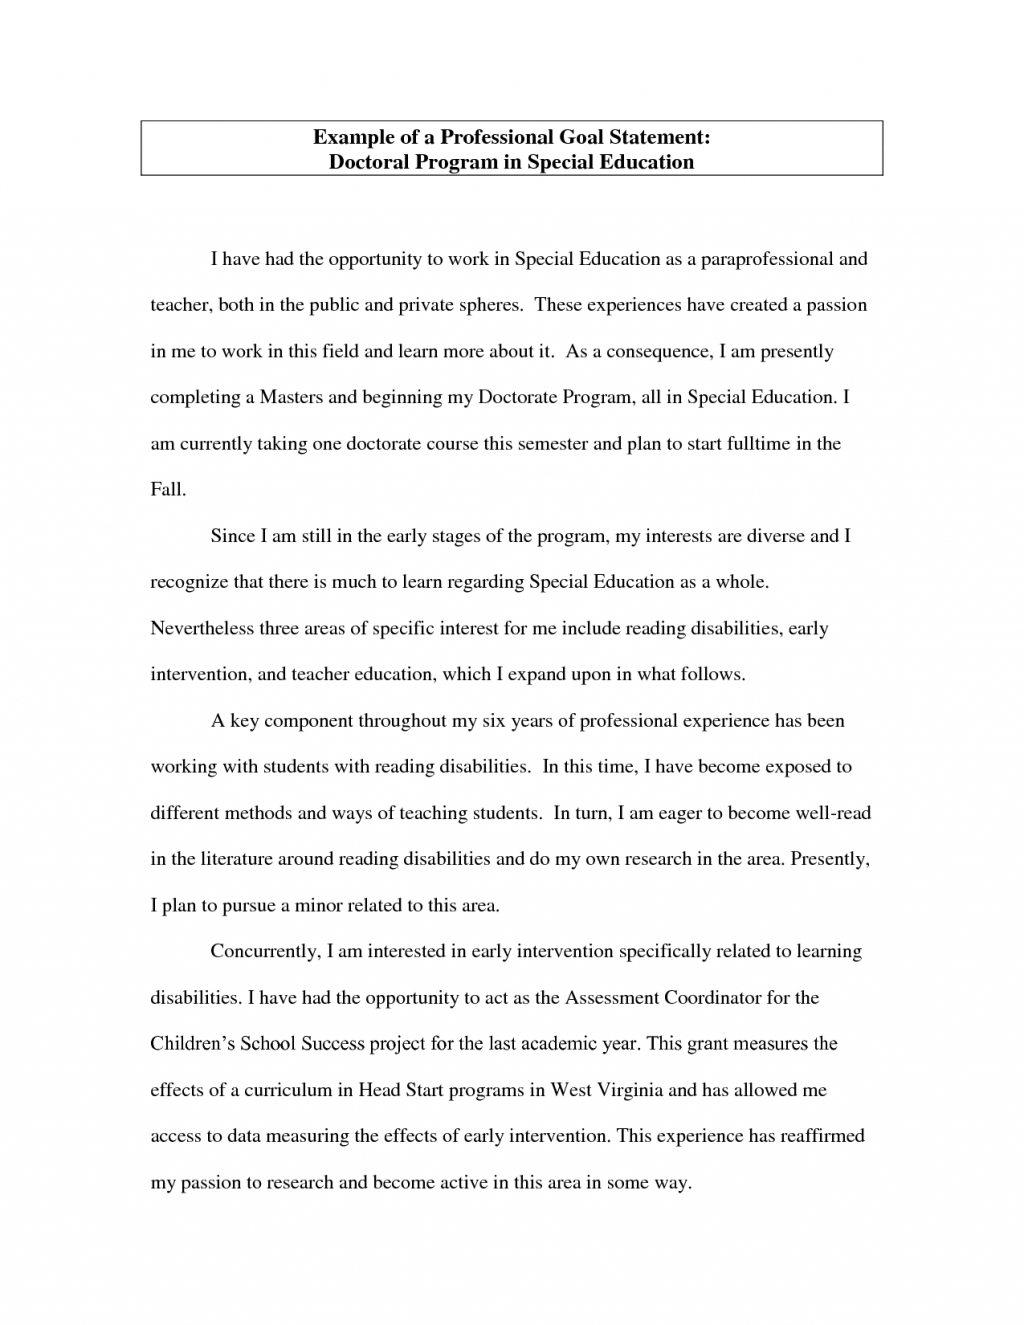 004 Research Paper Career Essay Examples School Reports In Class Of Their Own Telegraph The Topics Goal Statement Zdxttkpg Nursing20 1024x1325 College Fascinating Sample Full